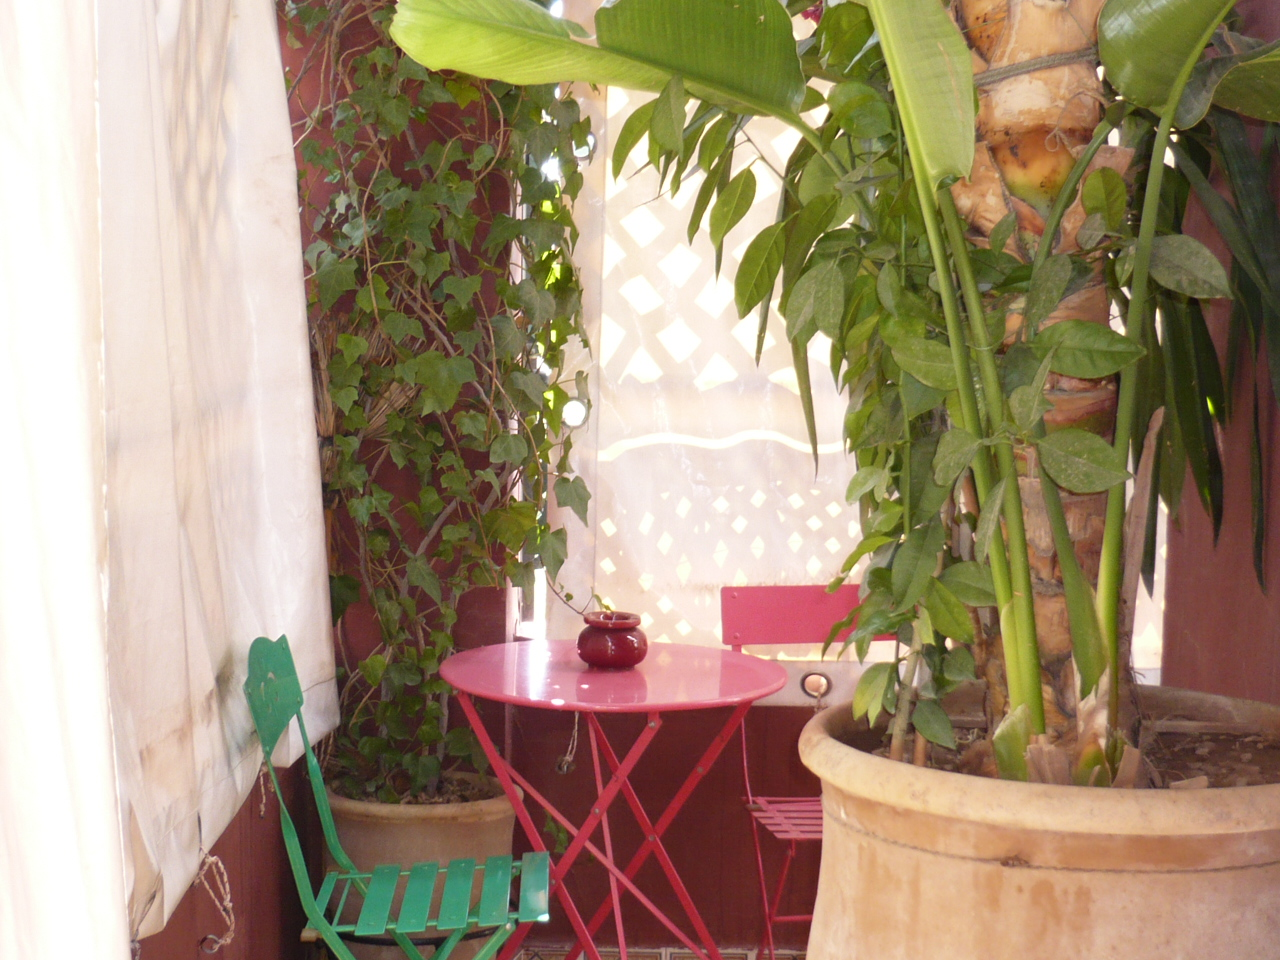 Image appartement en vente Marrakech 6